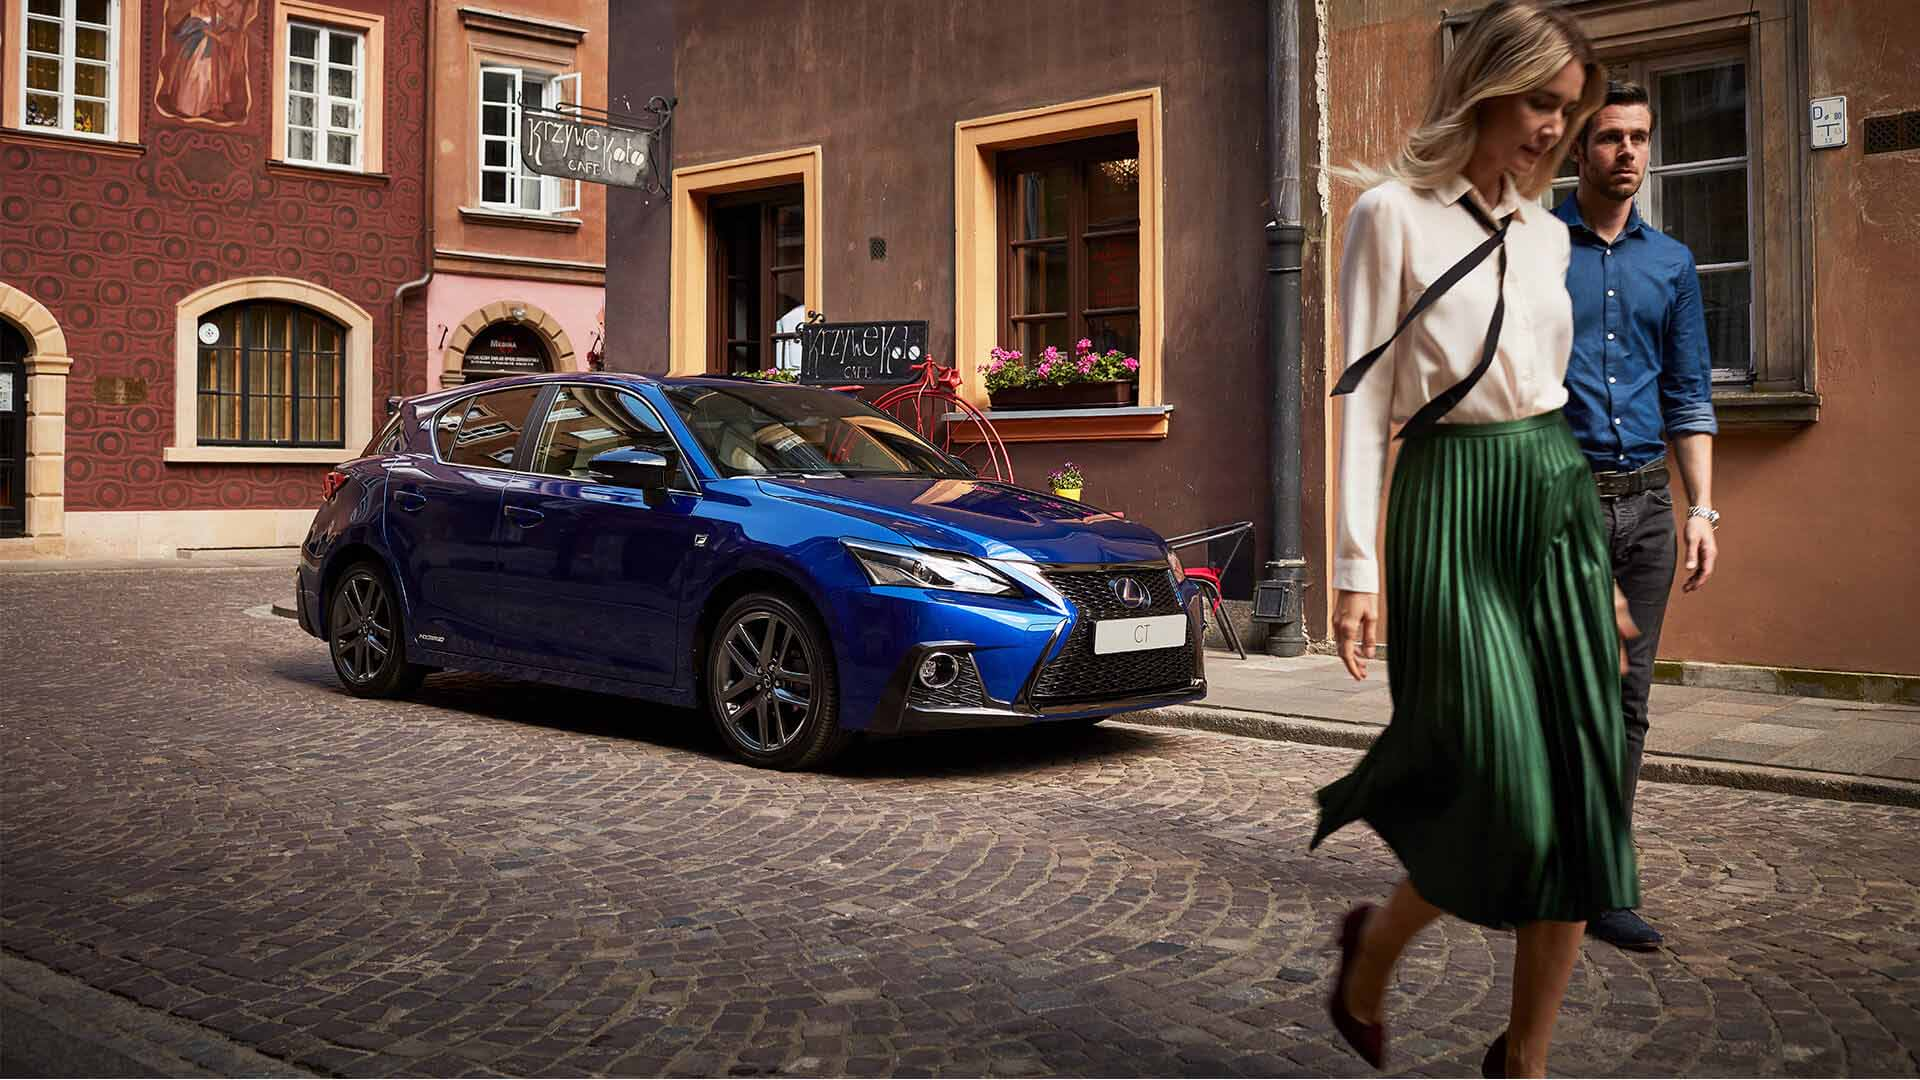 2018 lexus ct 200h my18 gallery 037 lifestyle